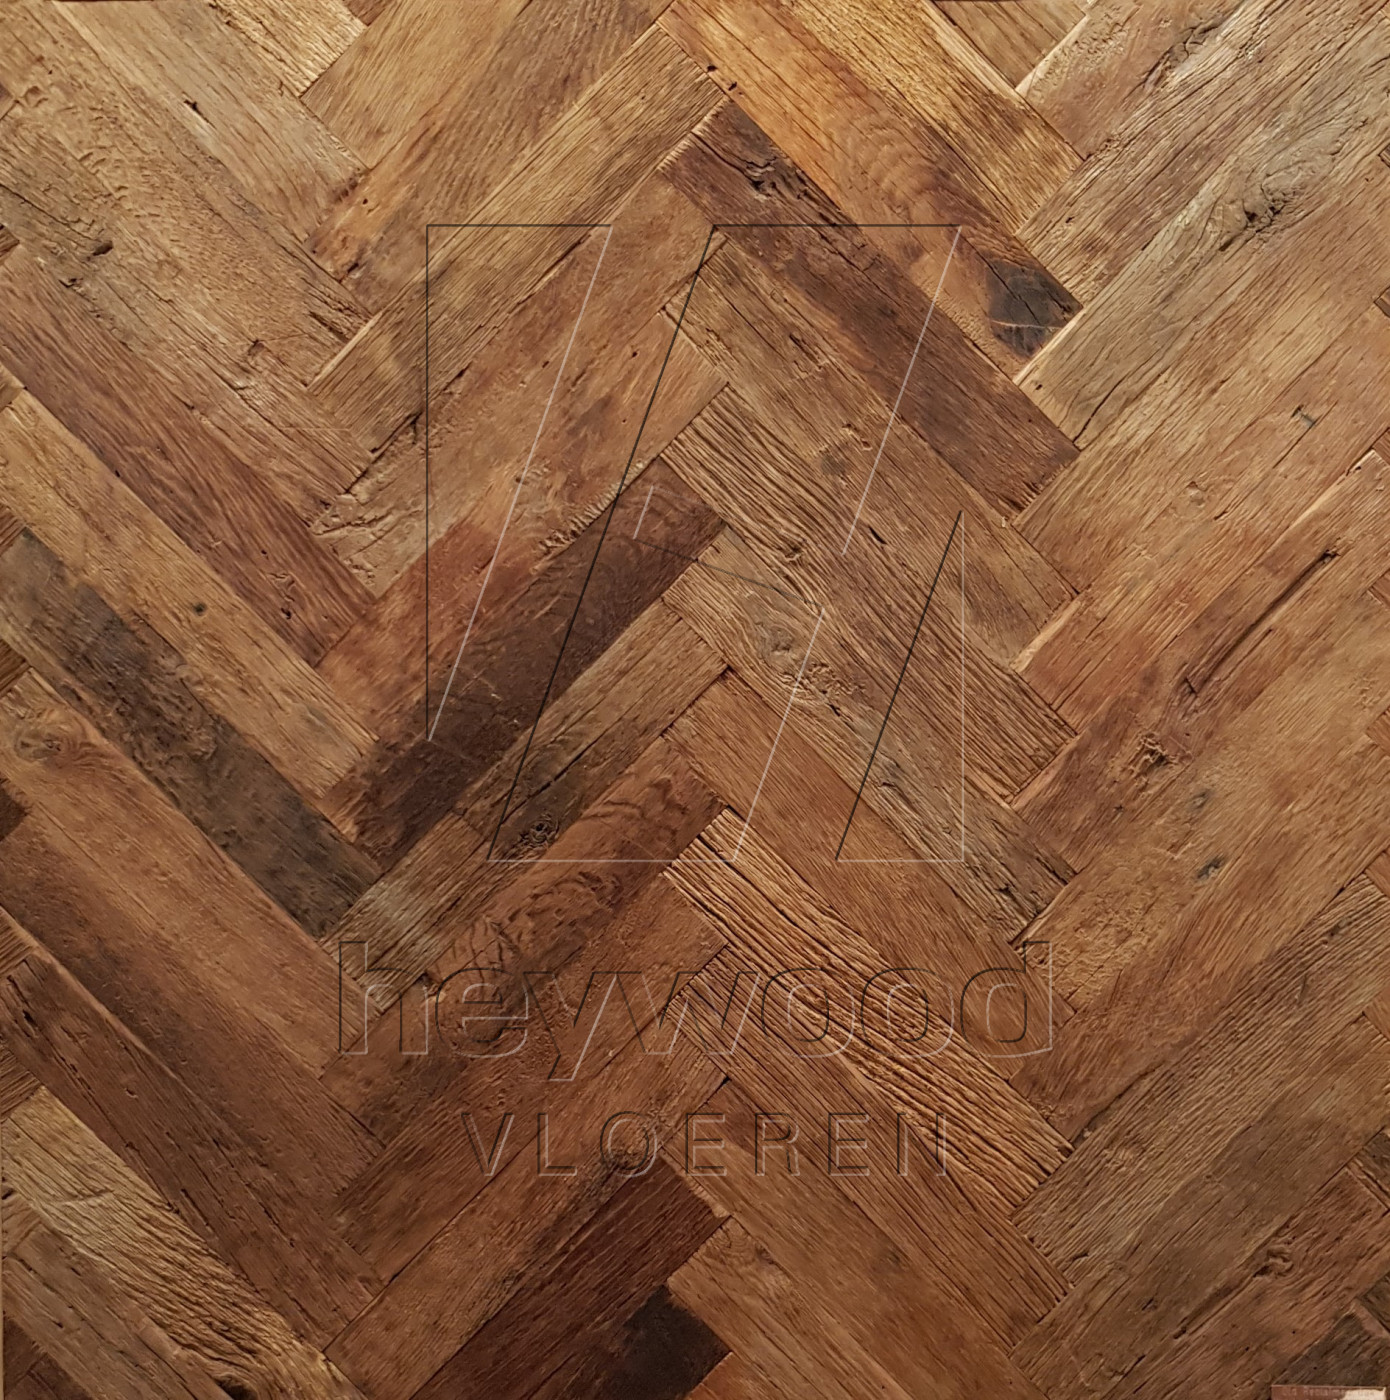 Cotswolds Herringbone 70 x 350mm (200 years old Reclaimed Oak, Outside) in Pattern & Panels (Outsides / Insides) of Old Reclaimed Wood